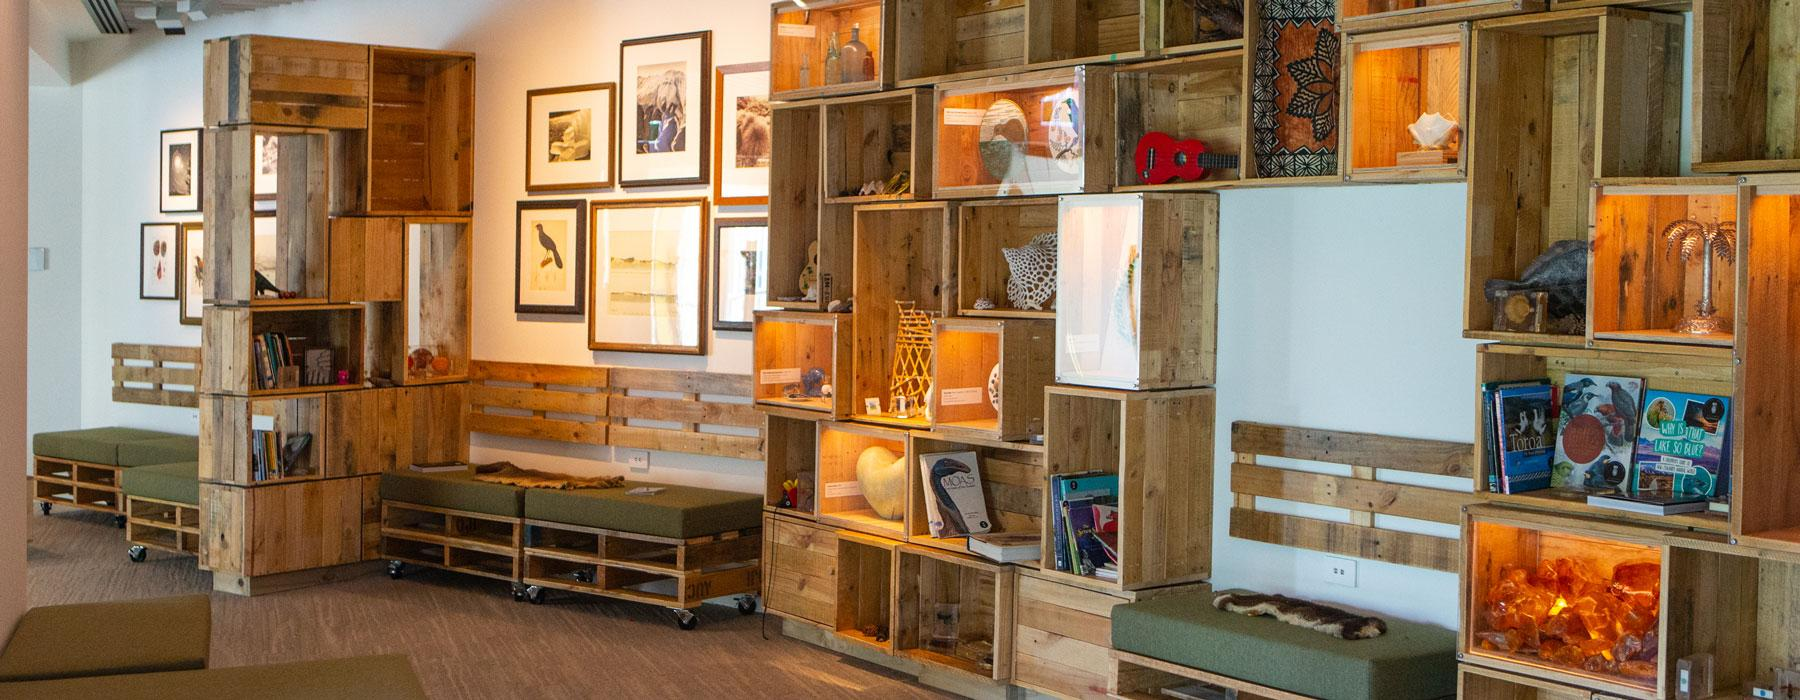 Walls covered in wooden boxes with objects inside, and lots of sofas